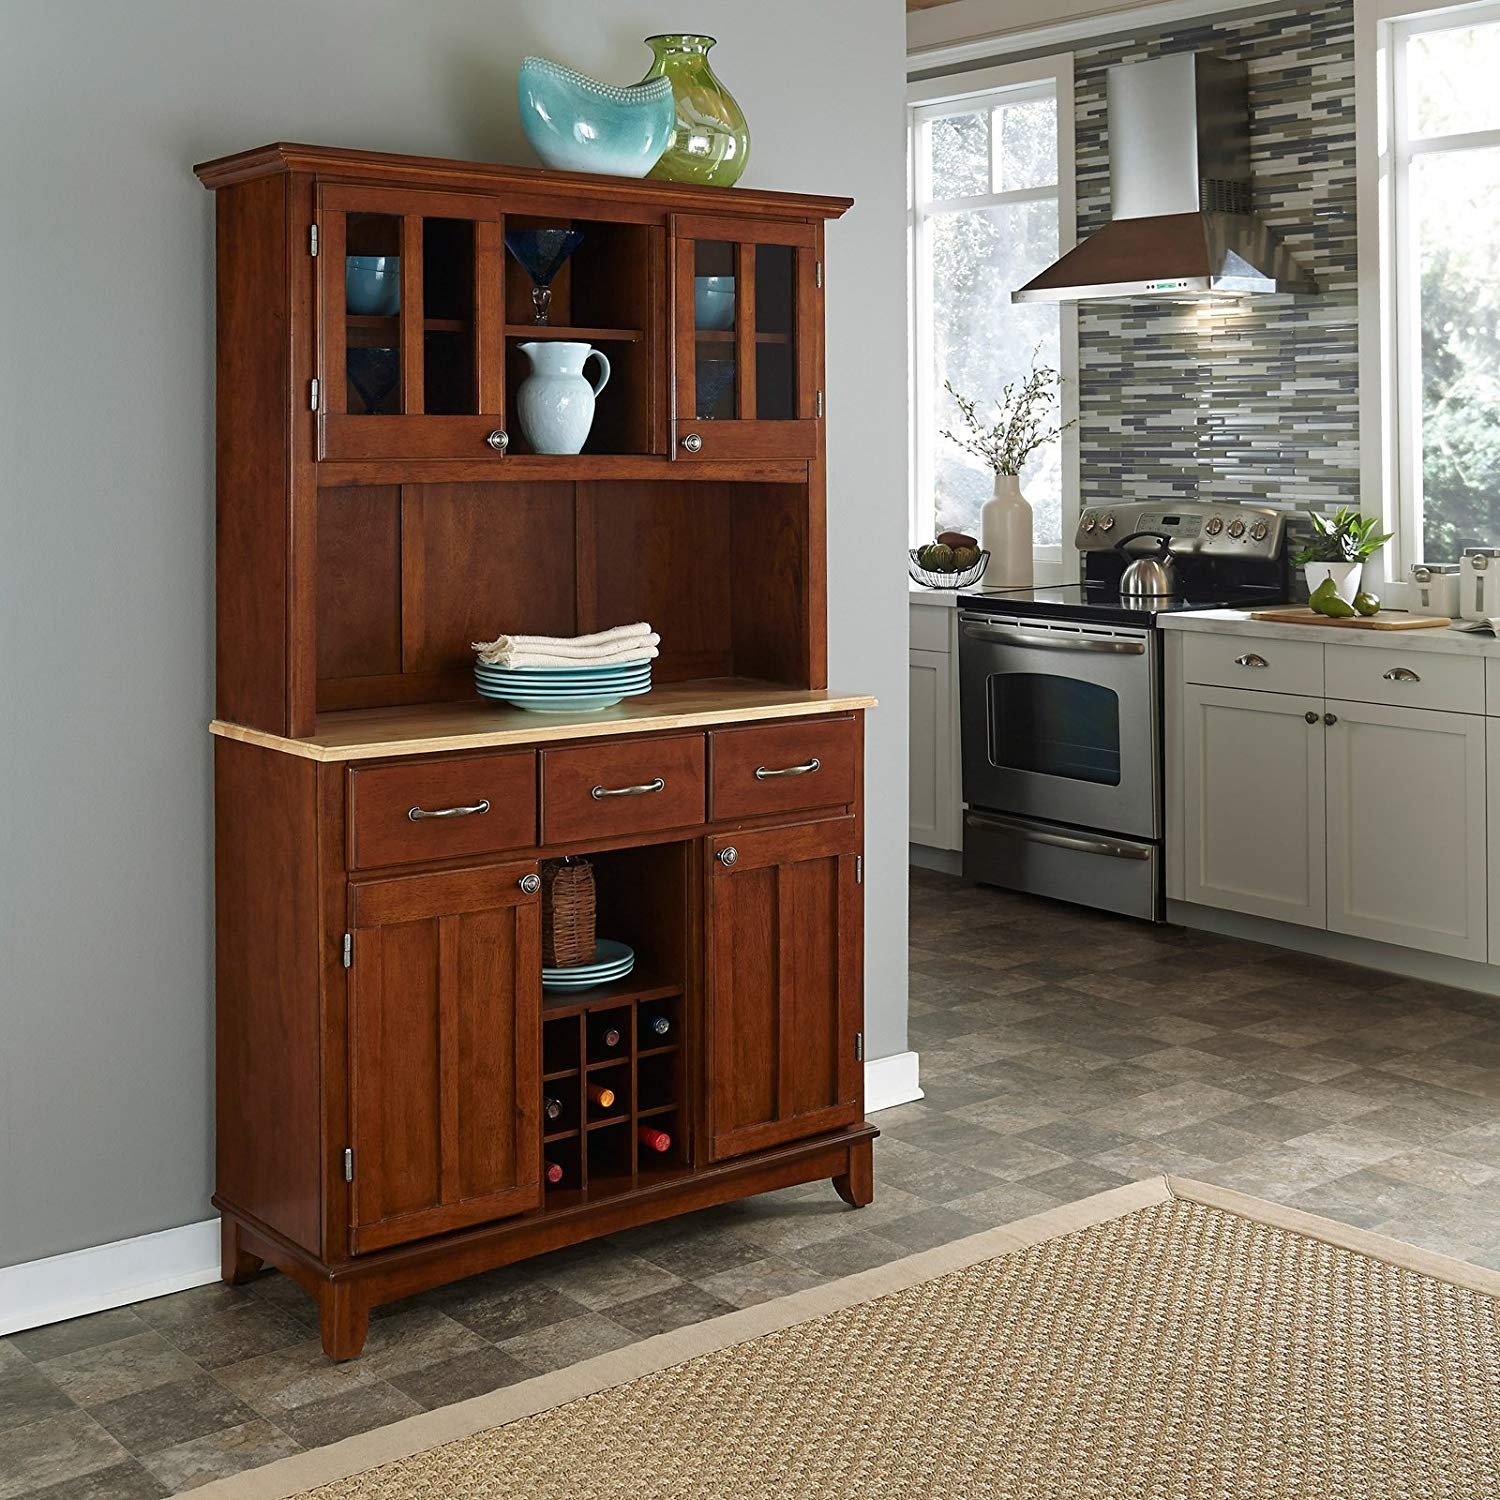 Cheap China Buffet Cabinets 208, Find China Buffet Cabinets With Simple Living Layla Black Buffets (View 8 of 30)